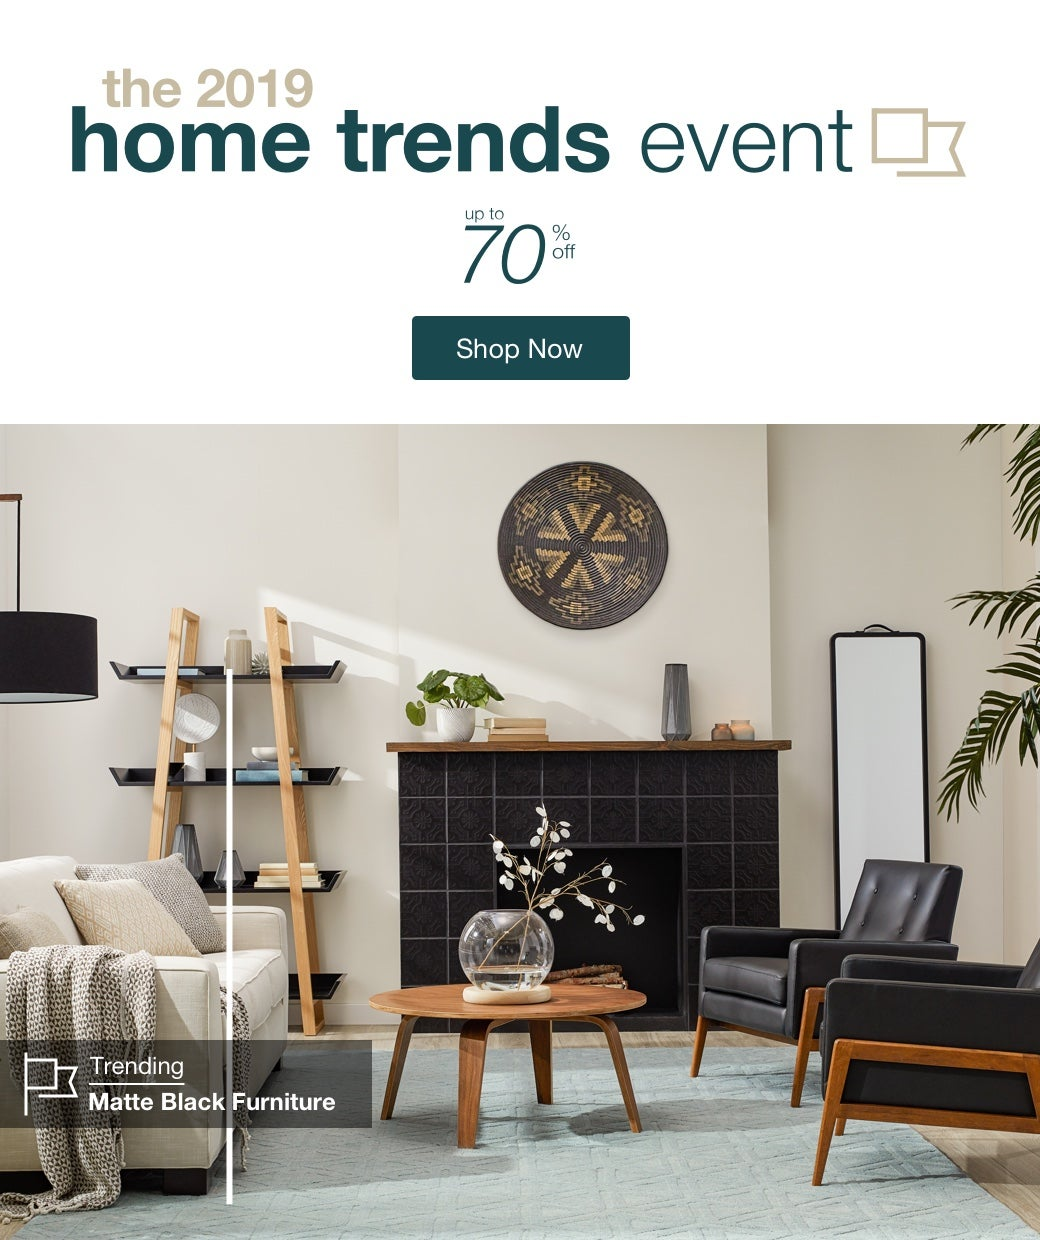 2019 Home Trends Event